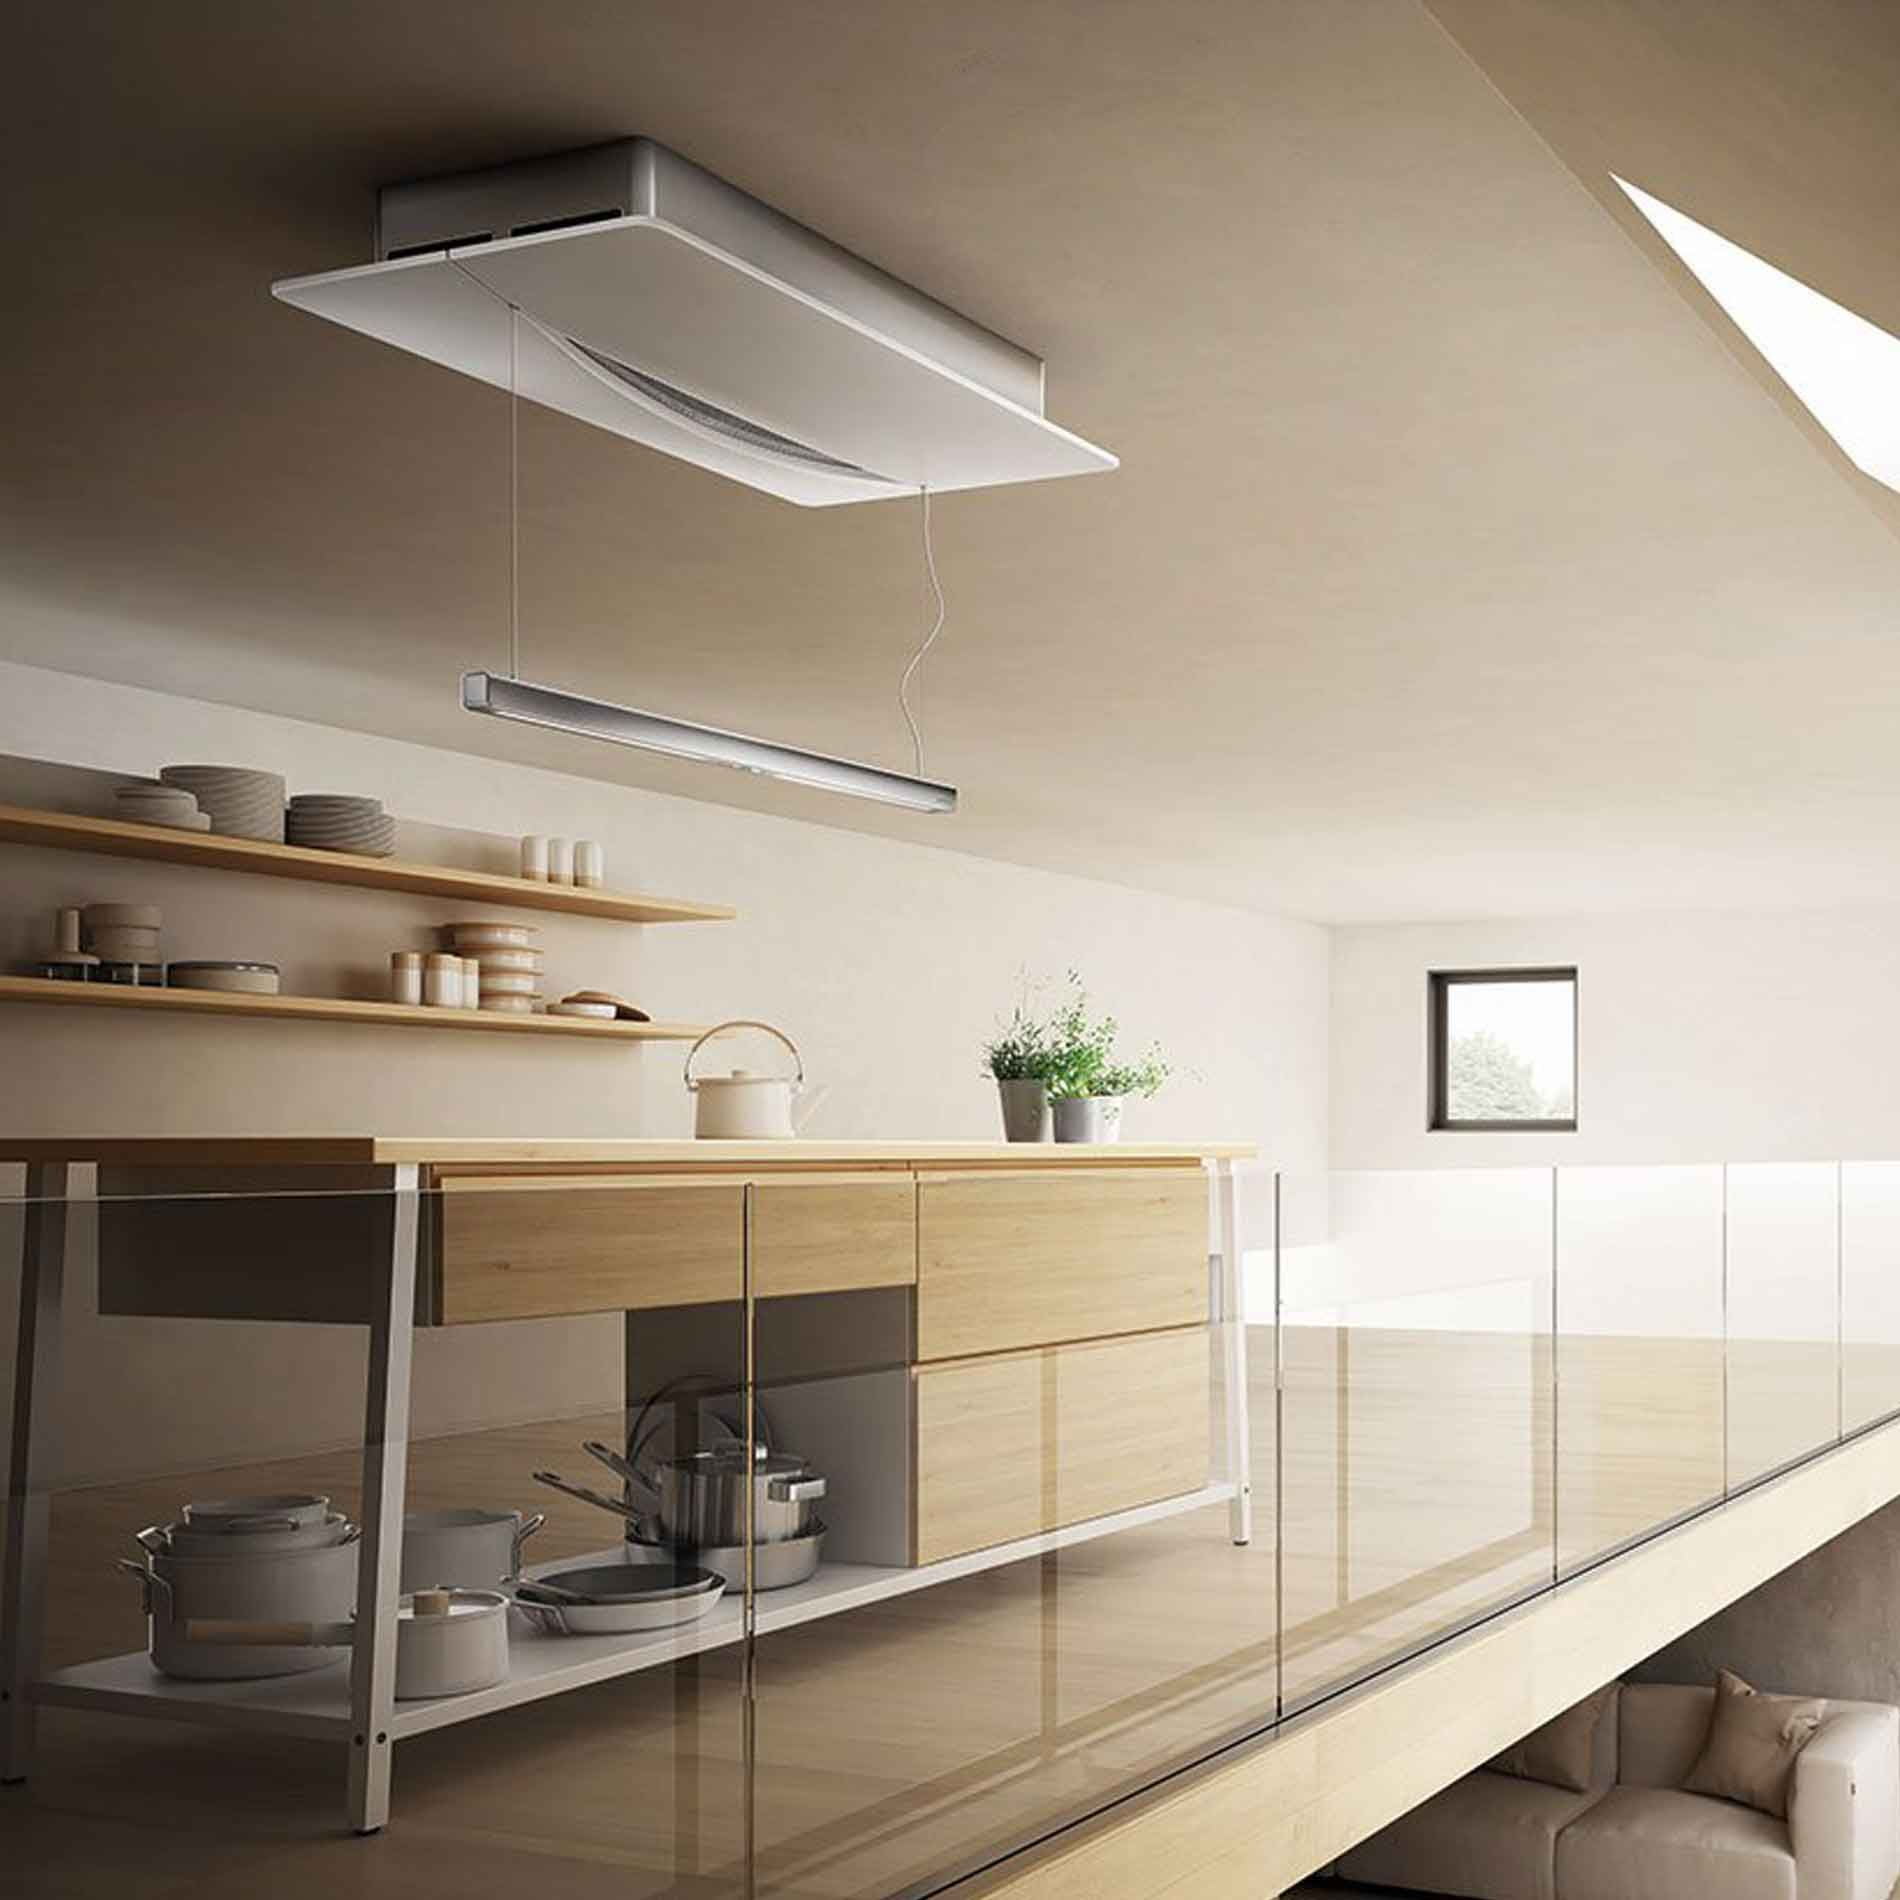 elica: empty sky techne ceiling hood - re-circulating - appliance